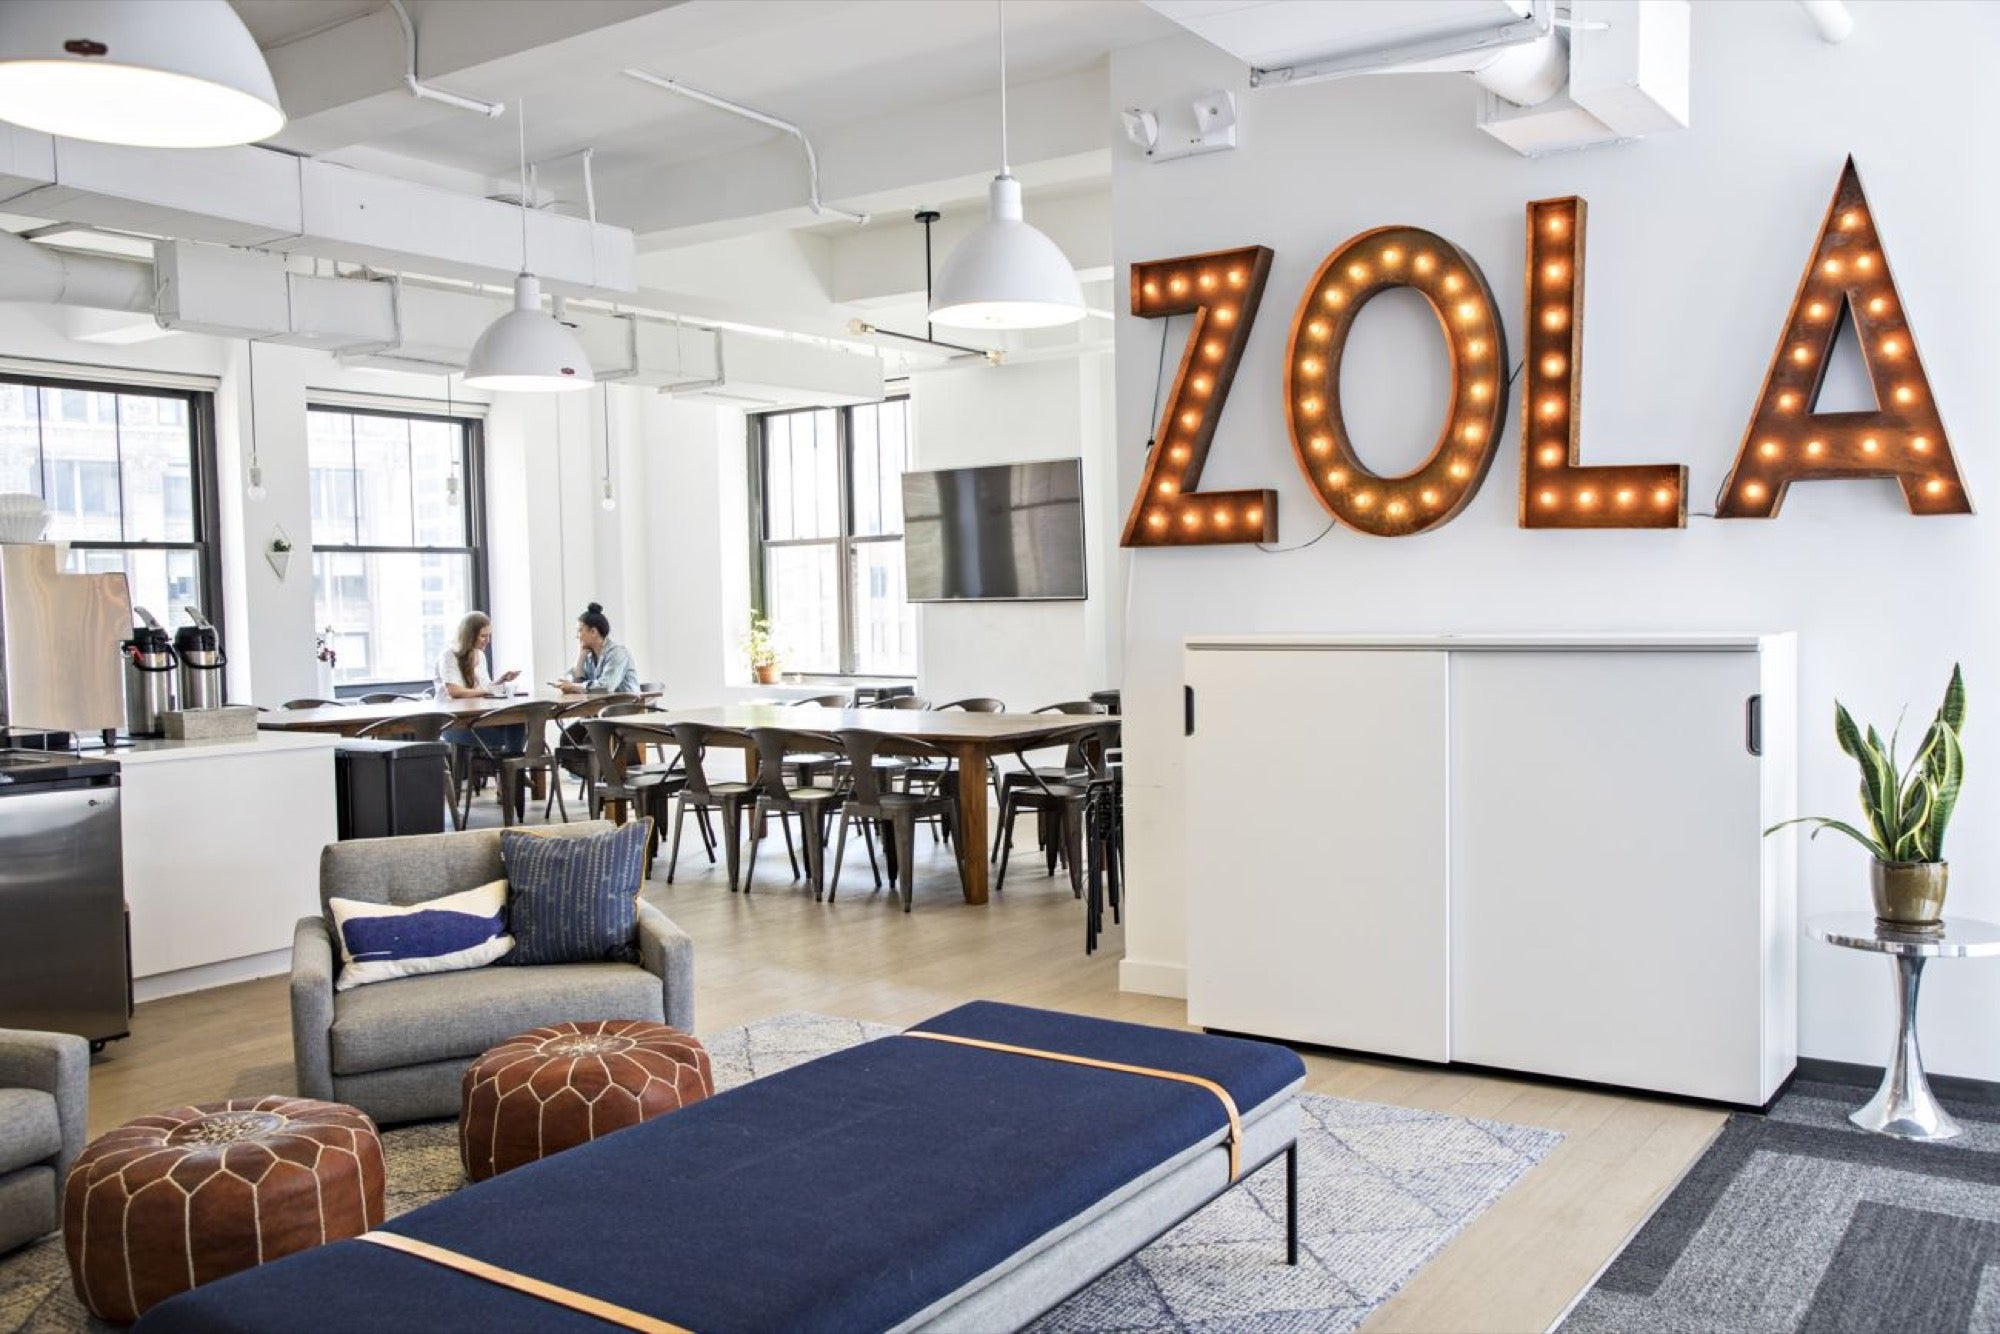 Hereu0027s How The Office Space For Wedding Registry Company Zola Keeps Its  Employees Engaged With The Brand